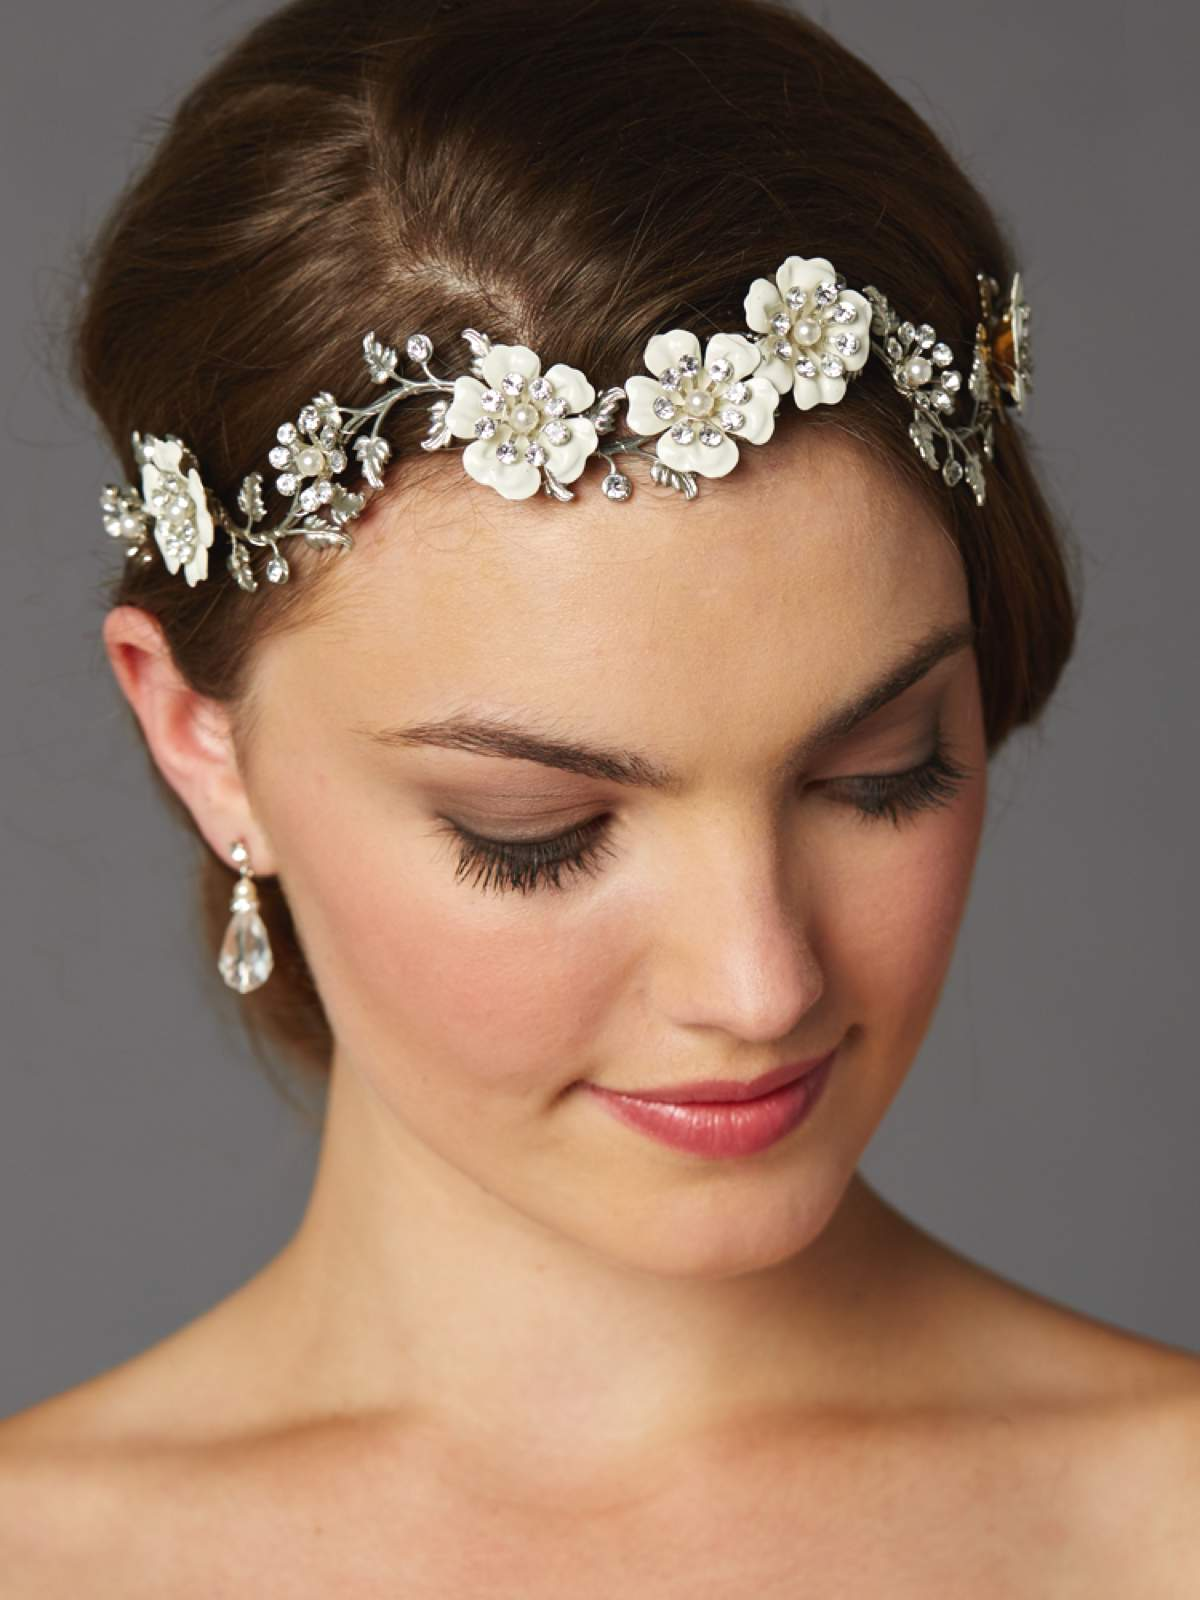 Autumn silver headband